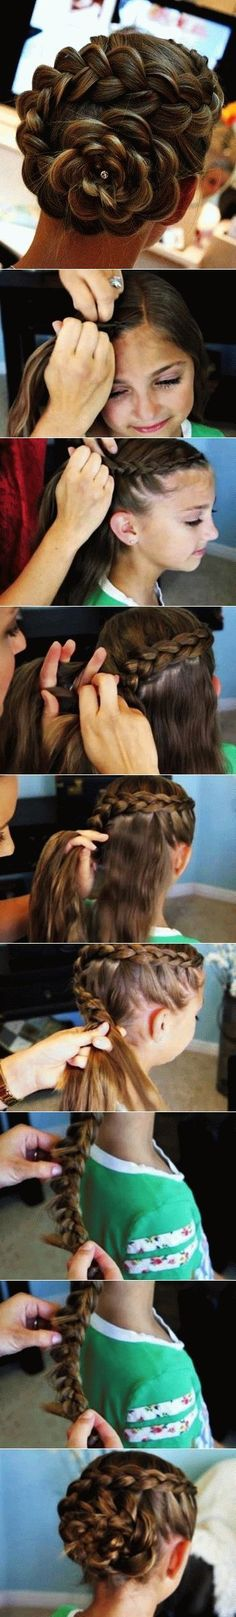 DIY Flower Hair beauty long hair updo braids how to diy hair hairstyles tutorials hair tutorials easy hairstyles The post DIY Flower Hair beauty long hair updo braids how to diy hair hairstyles tutorial appeared first on Hair Styles. Hairstyles Haircuts, Braided Hairstyles, Wedding Hairstyles, Hairstyle Braid, Latest Hairstyles, Flower Hairstyles, Braided Updo, Lehenga Hairstyles, Natural Hairstyles